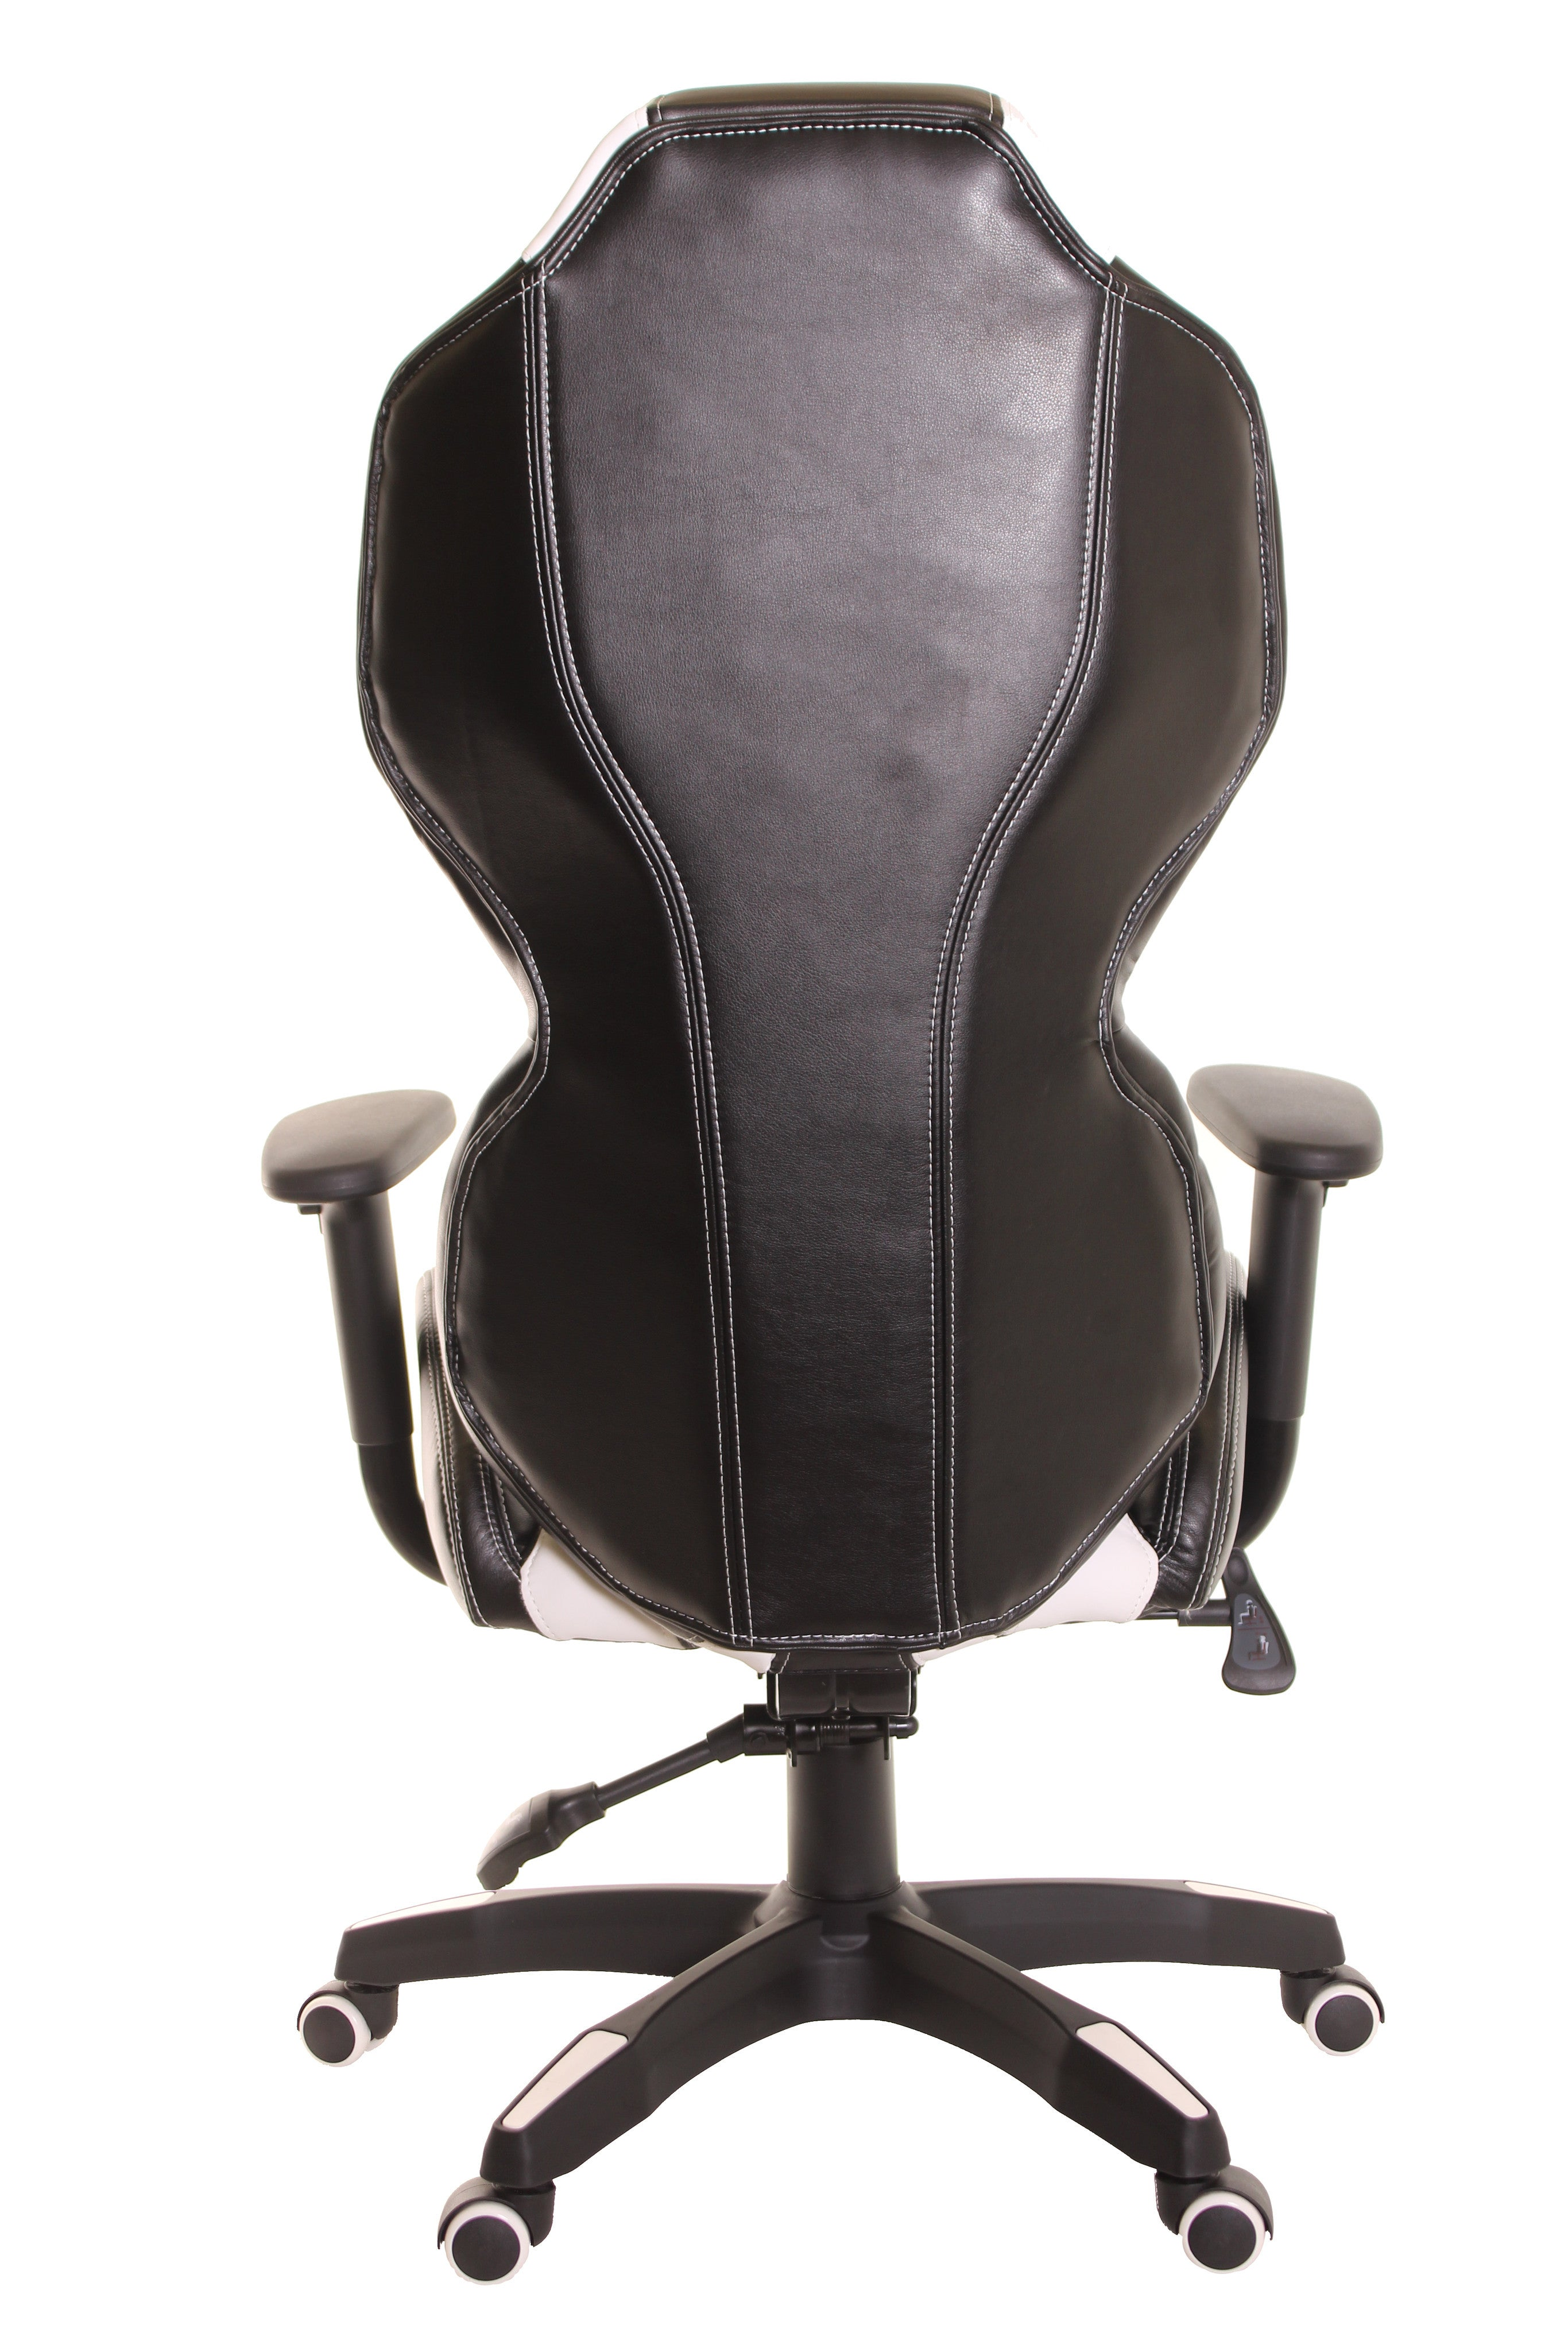 Bolt Series High Back Ergonomic Gaming Chair by Time fice – Time